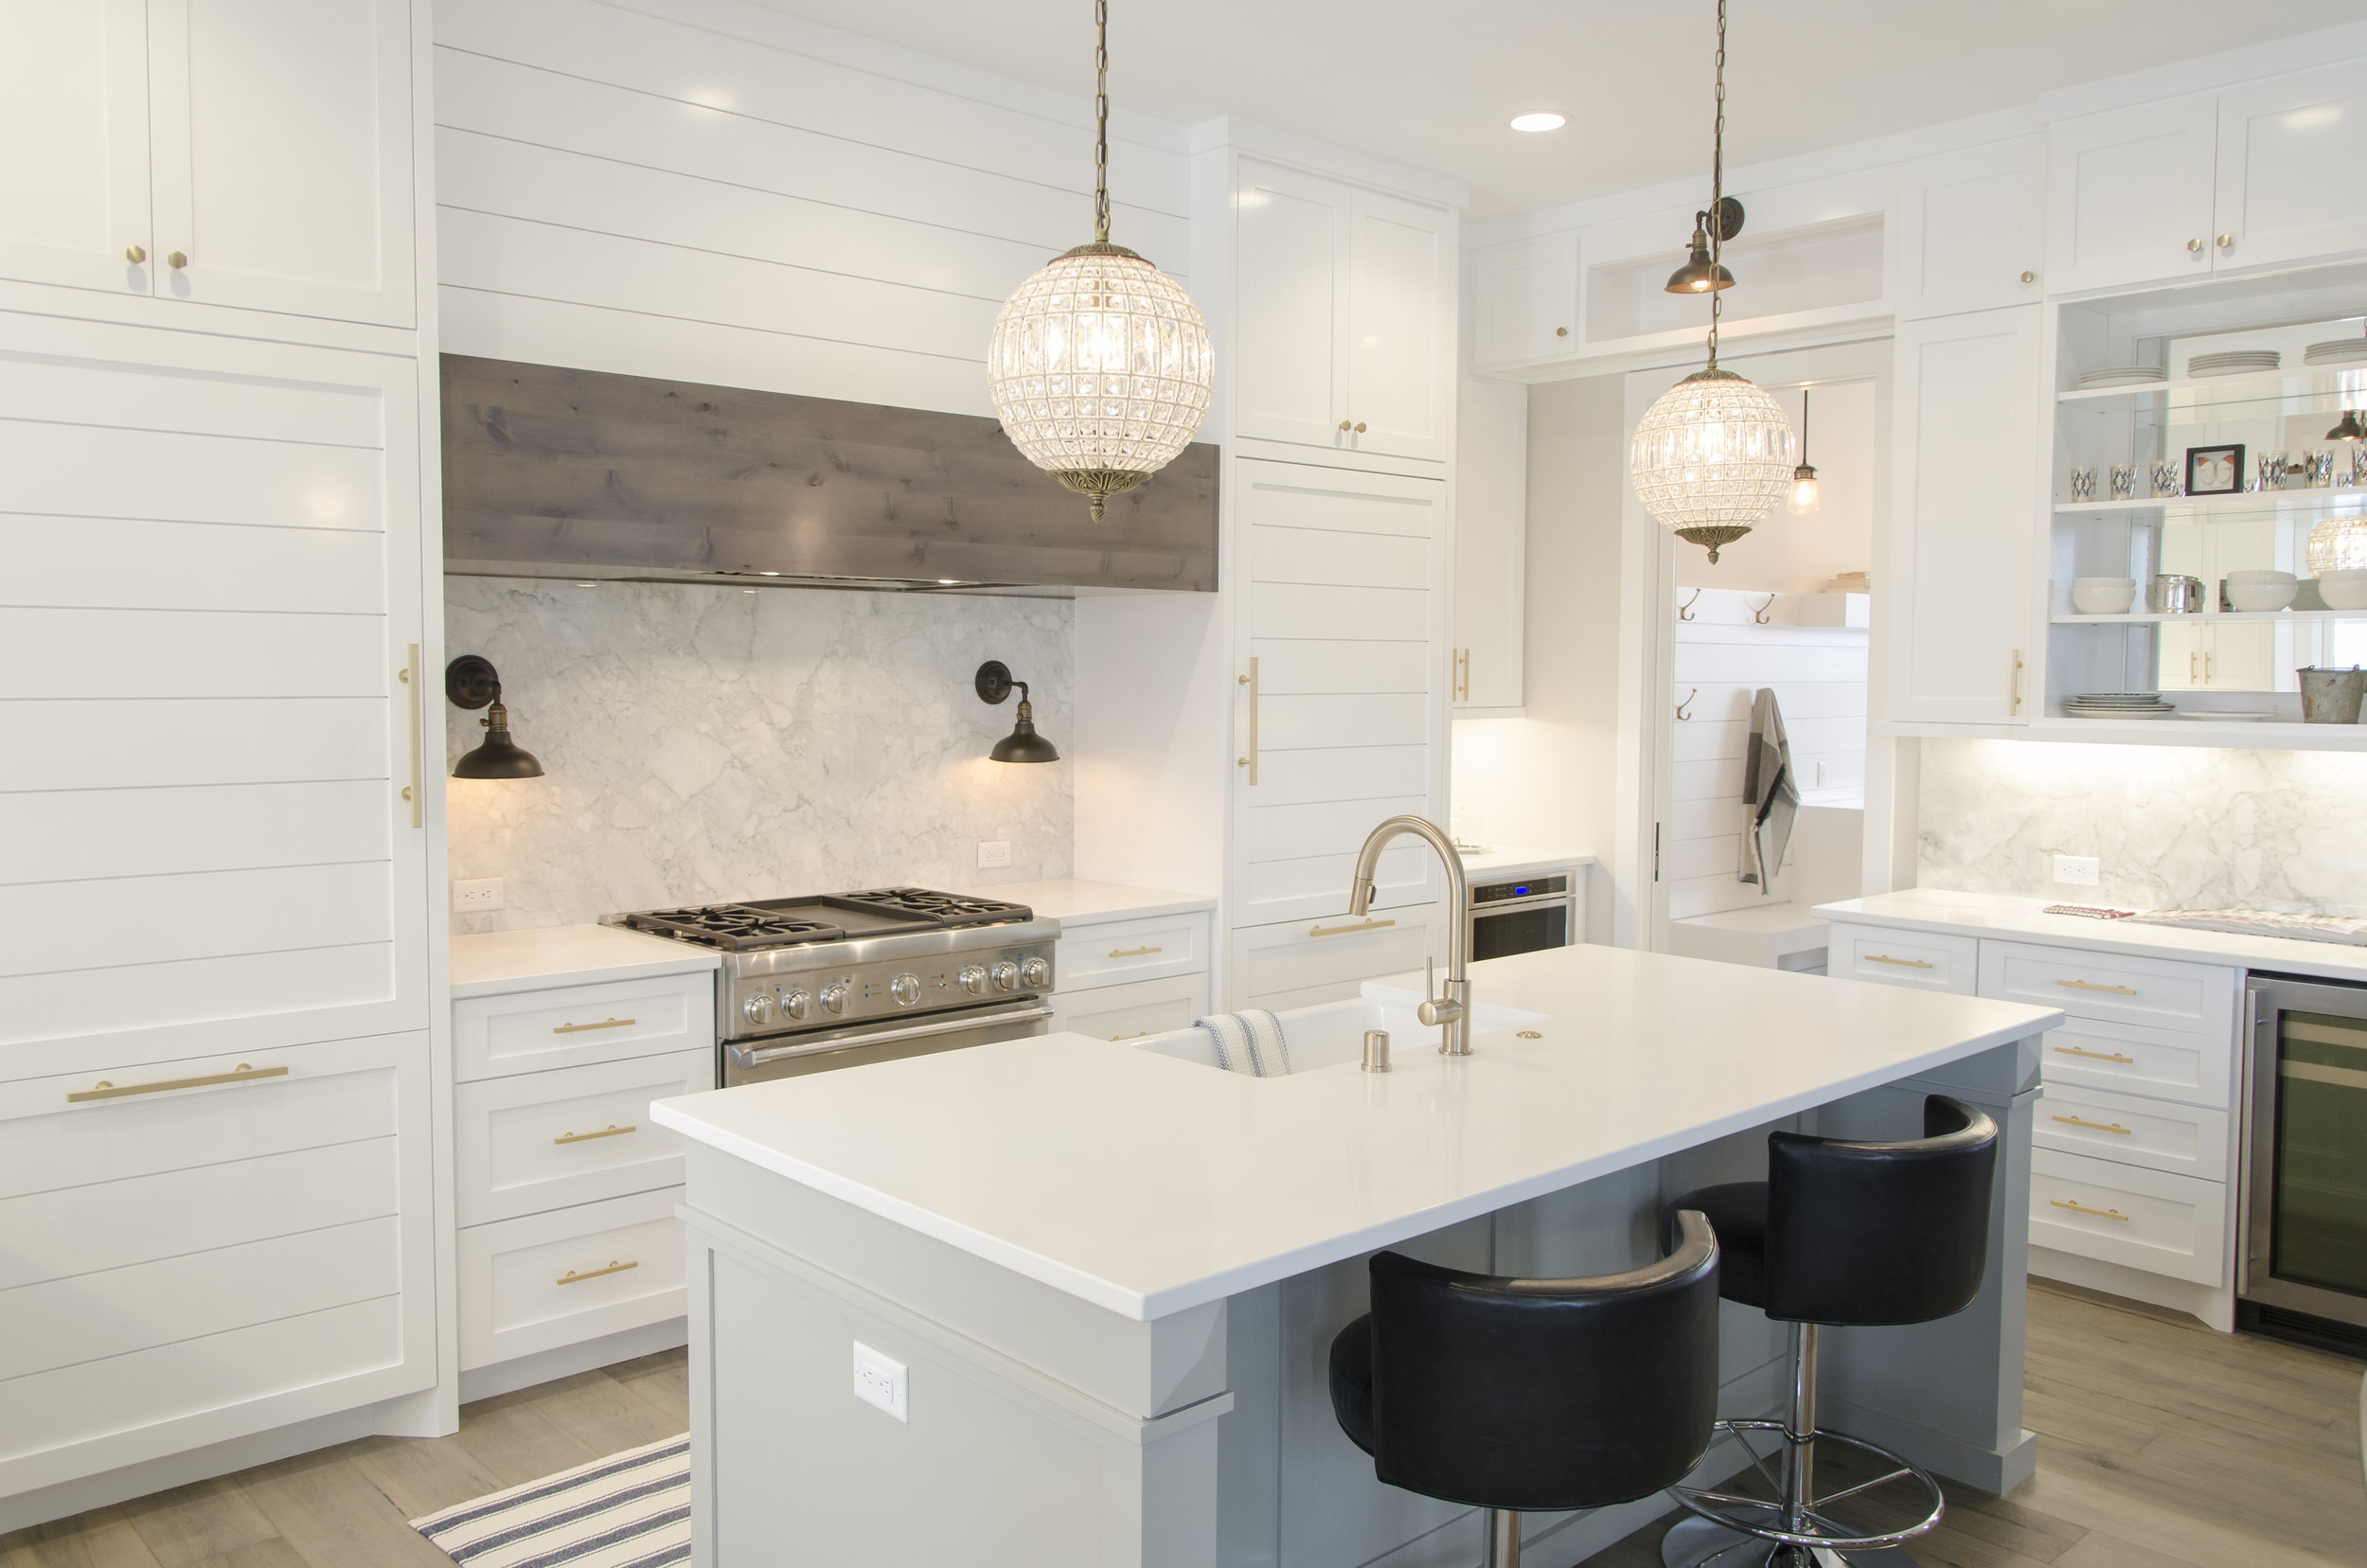 5 Kitchen Design Tips To Increase The Value Of Your Homeu0027s Investment  Property